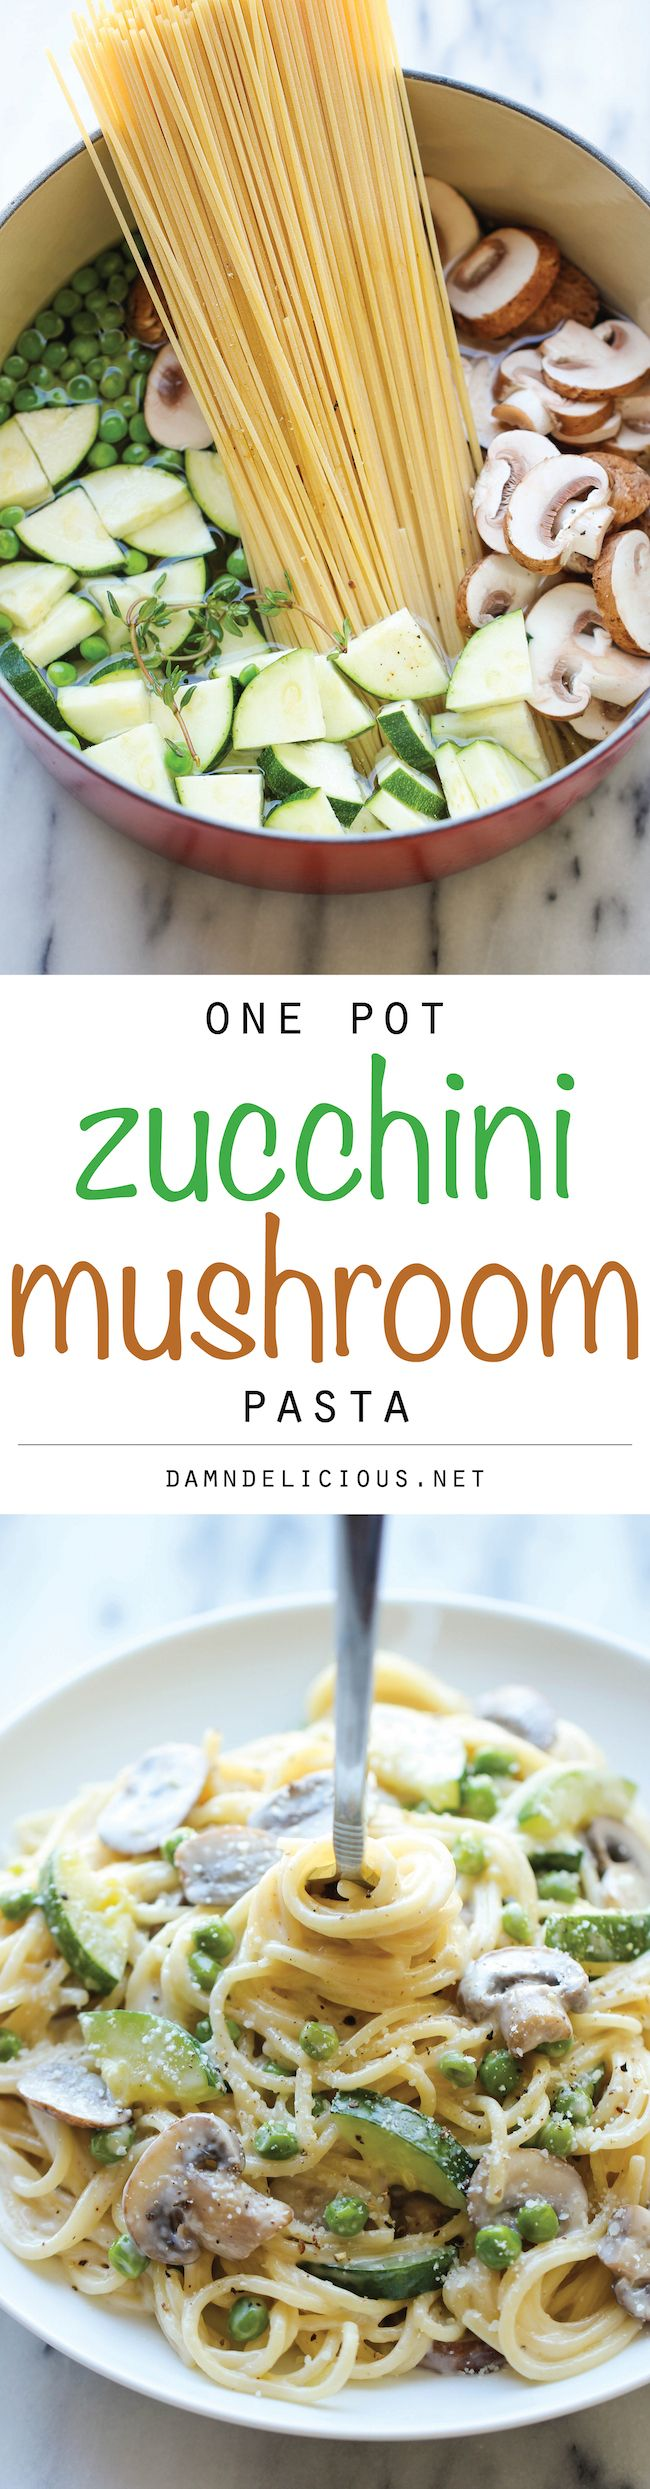 One Pot Zucchini Mushroom Pasta - A creamy, hearty pasta dish that you can make in just 20 min. Even the pasta gets cooked in the pot! I'd swap coconut milk for the cream but you don't even need to add cream you can use a little EVOO sea salt and pepper! Oh and I'd use Brown Rice Pasta (GF)